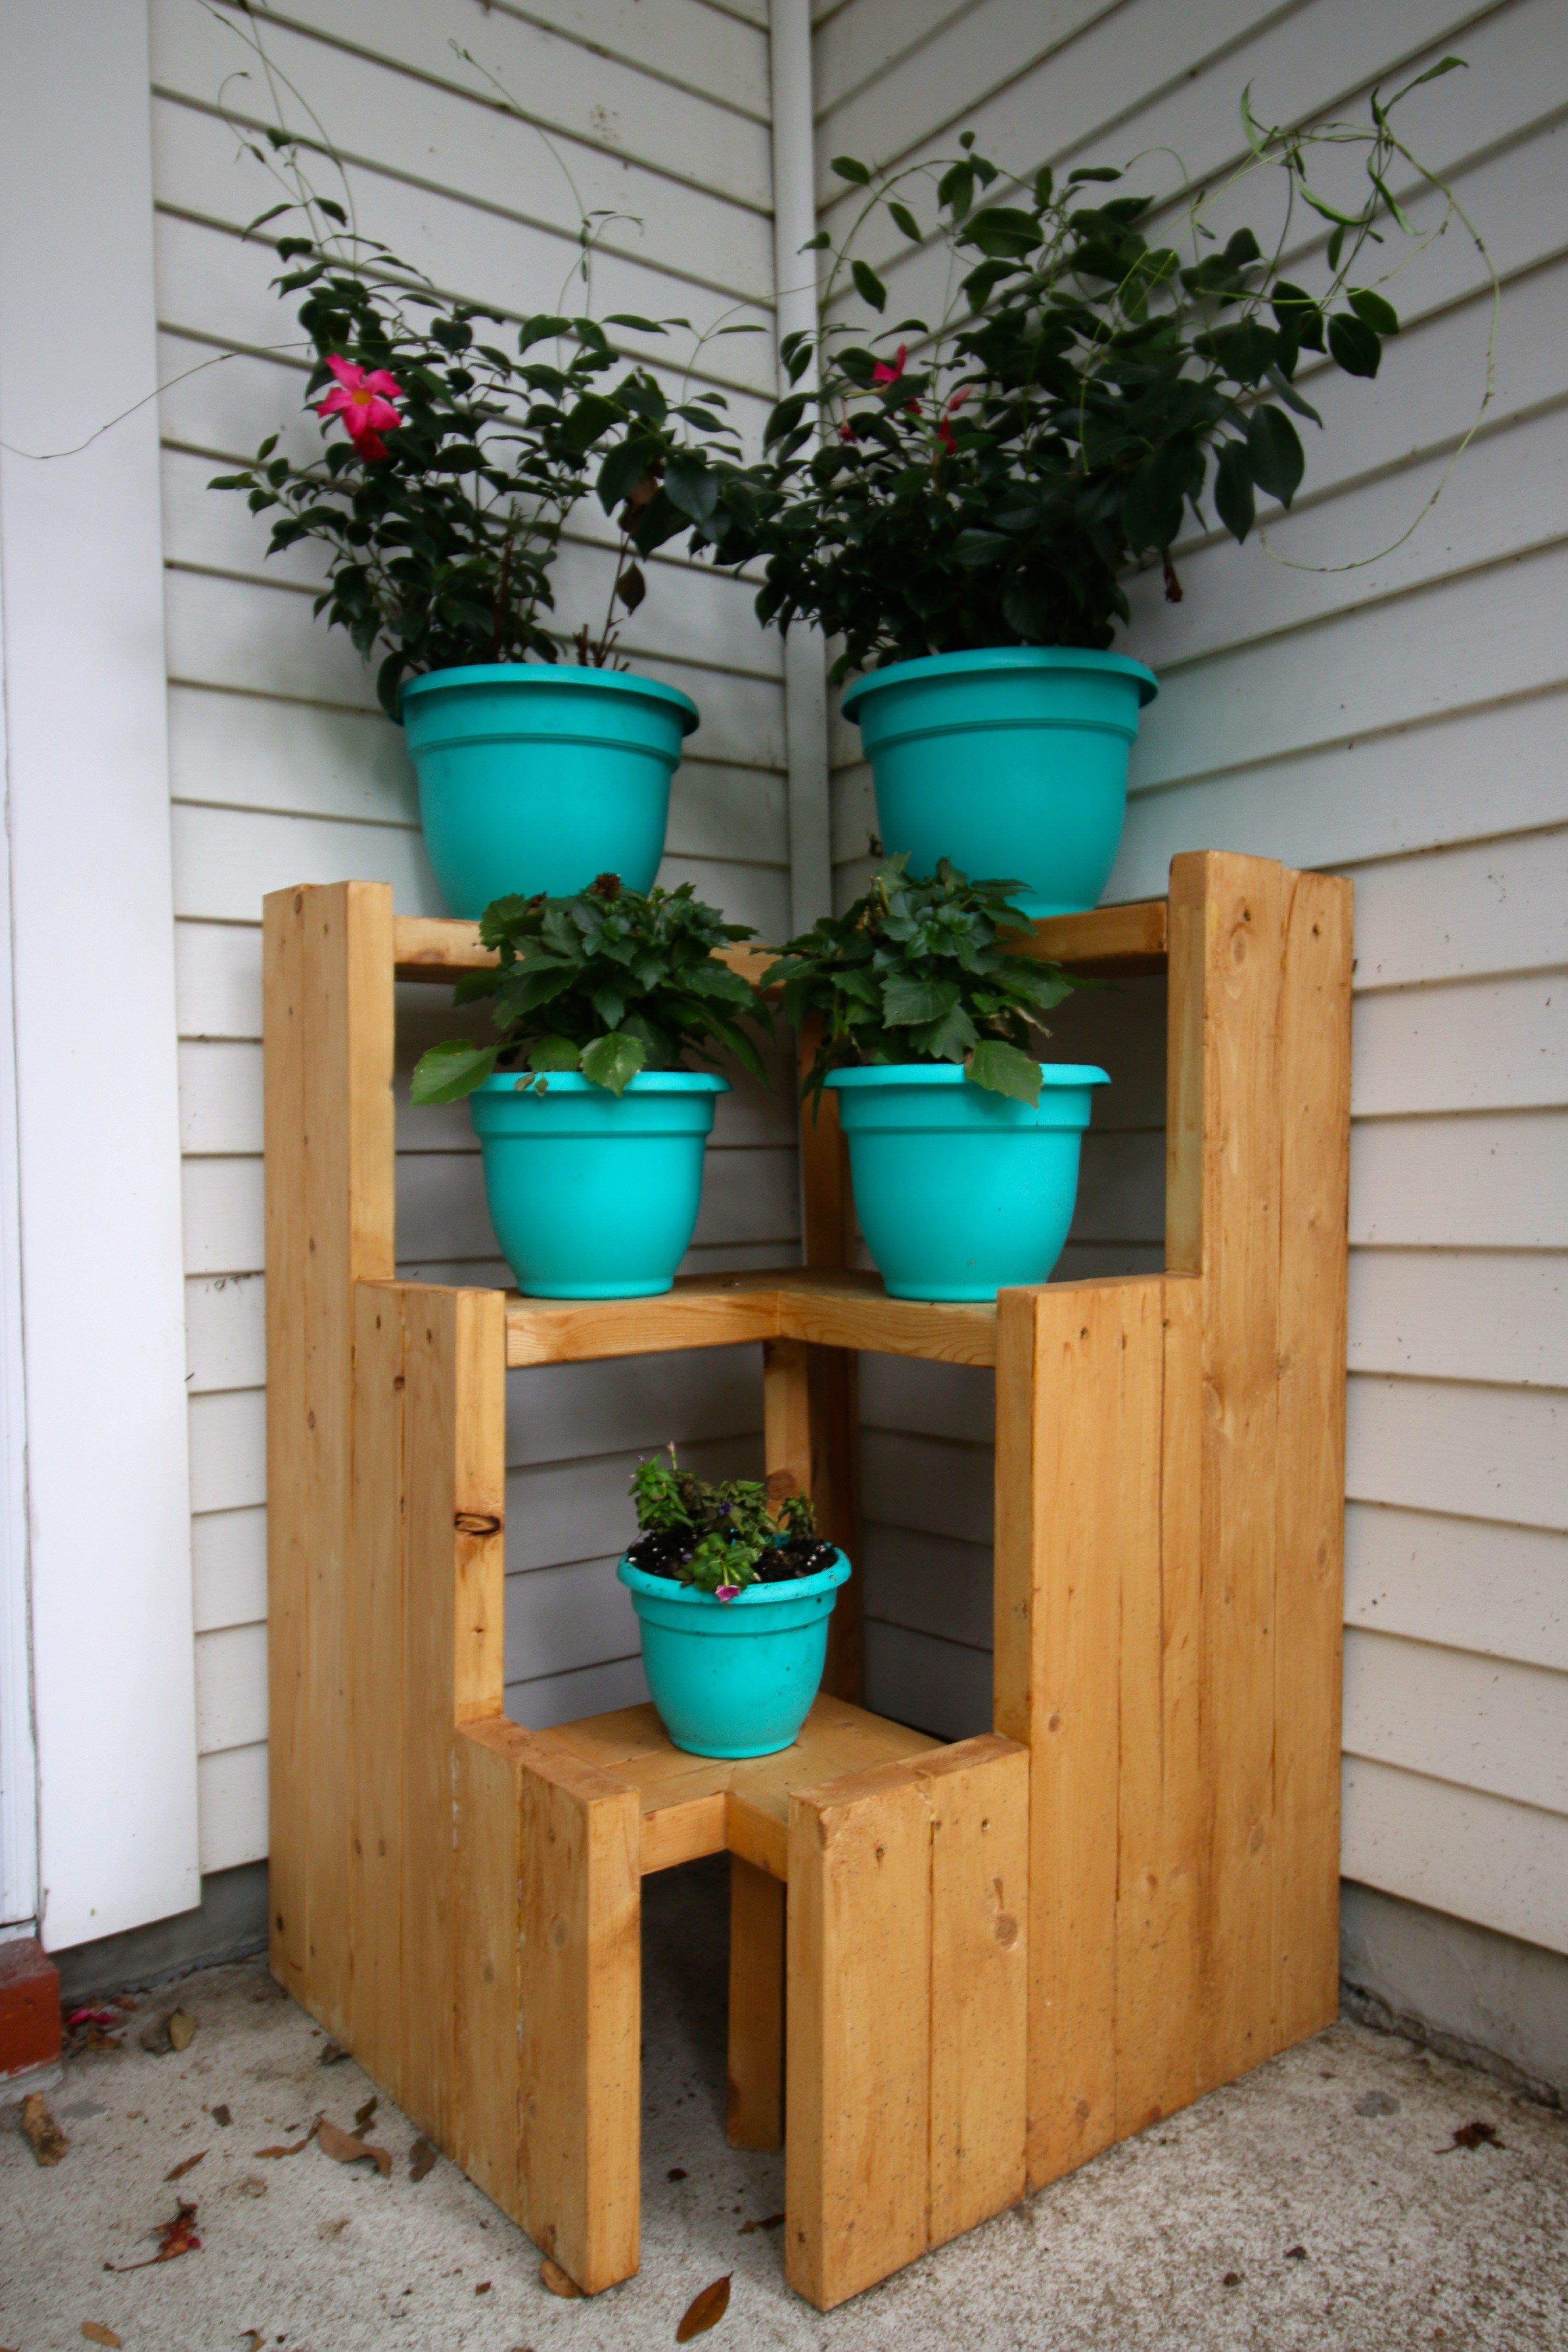 Diy 3 Tiered Planter Corner Plant Stand For Front Porch Built From